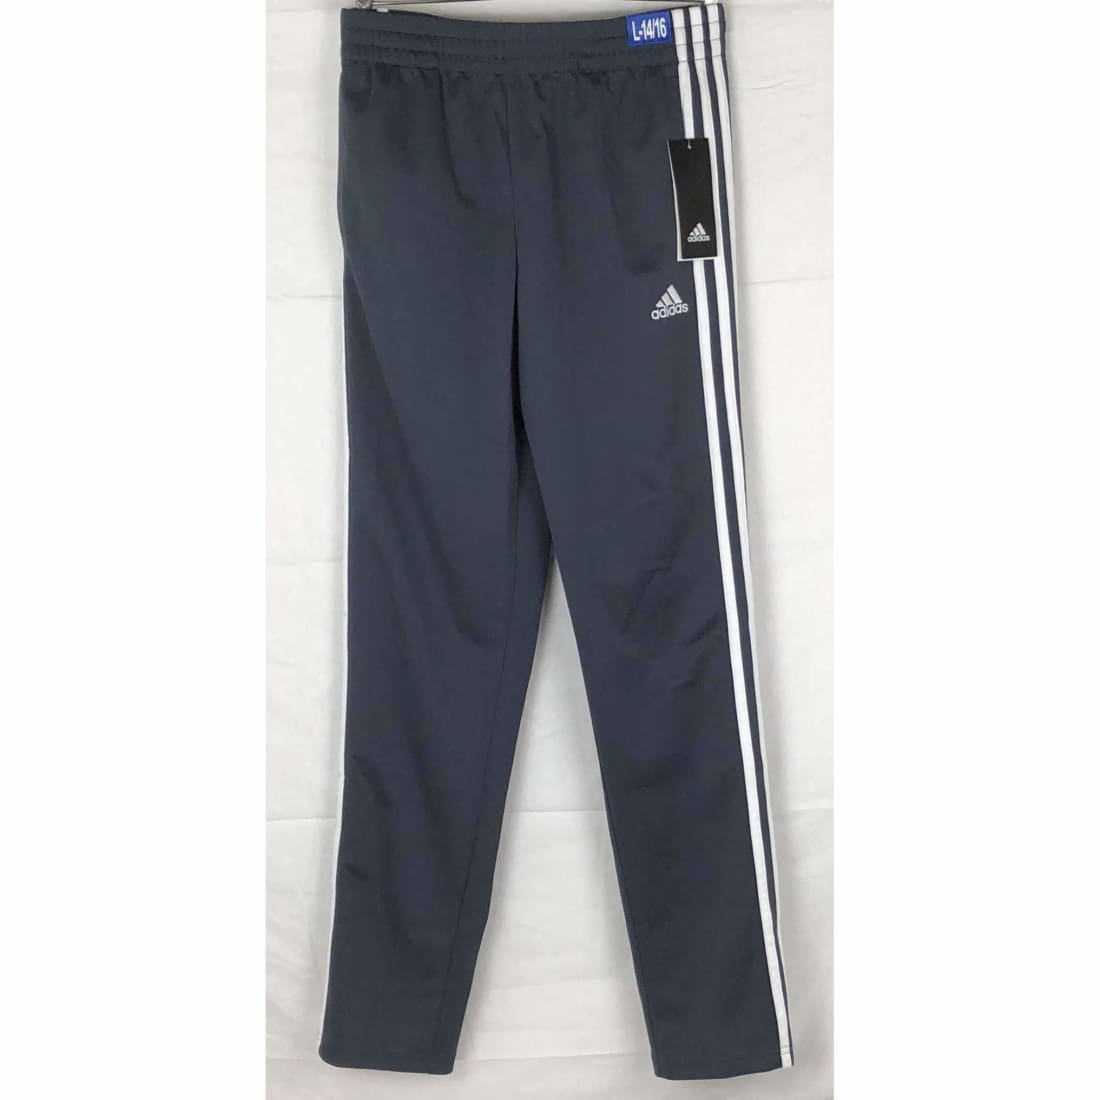 Adidas Boys Tapered Leg 3 Stripe Athletic Pants L / Dk Grey Athletic Apparel